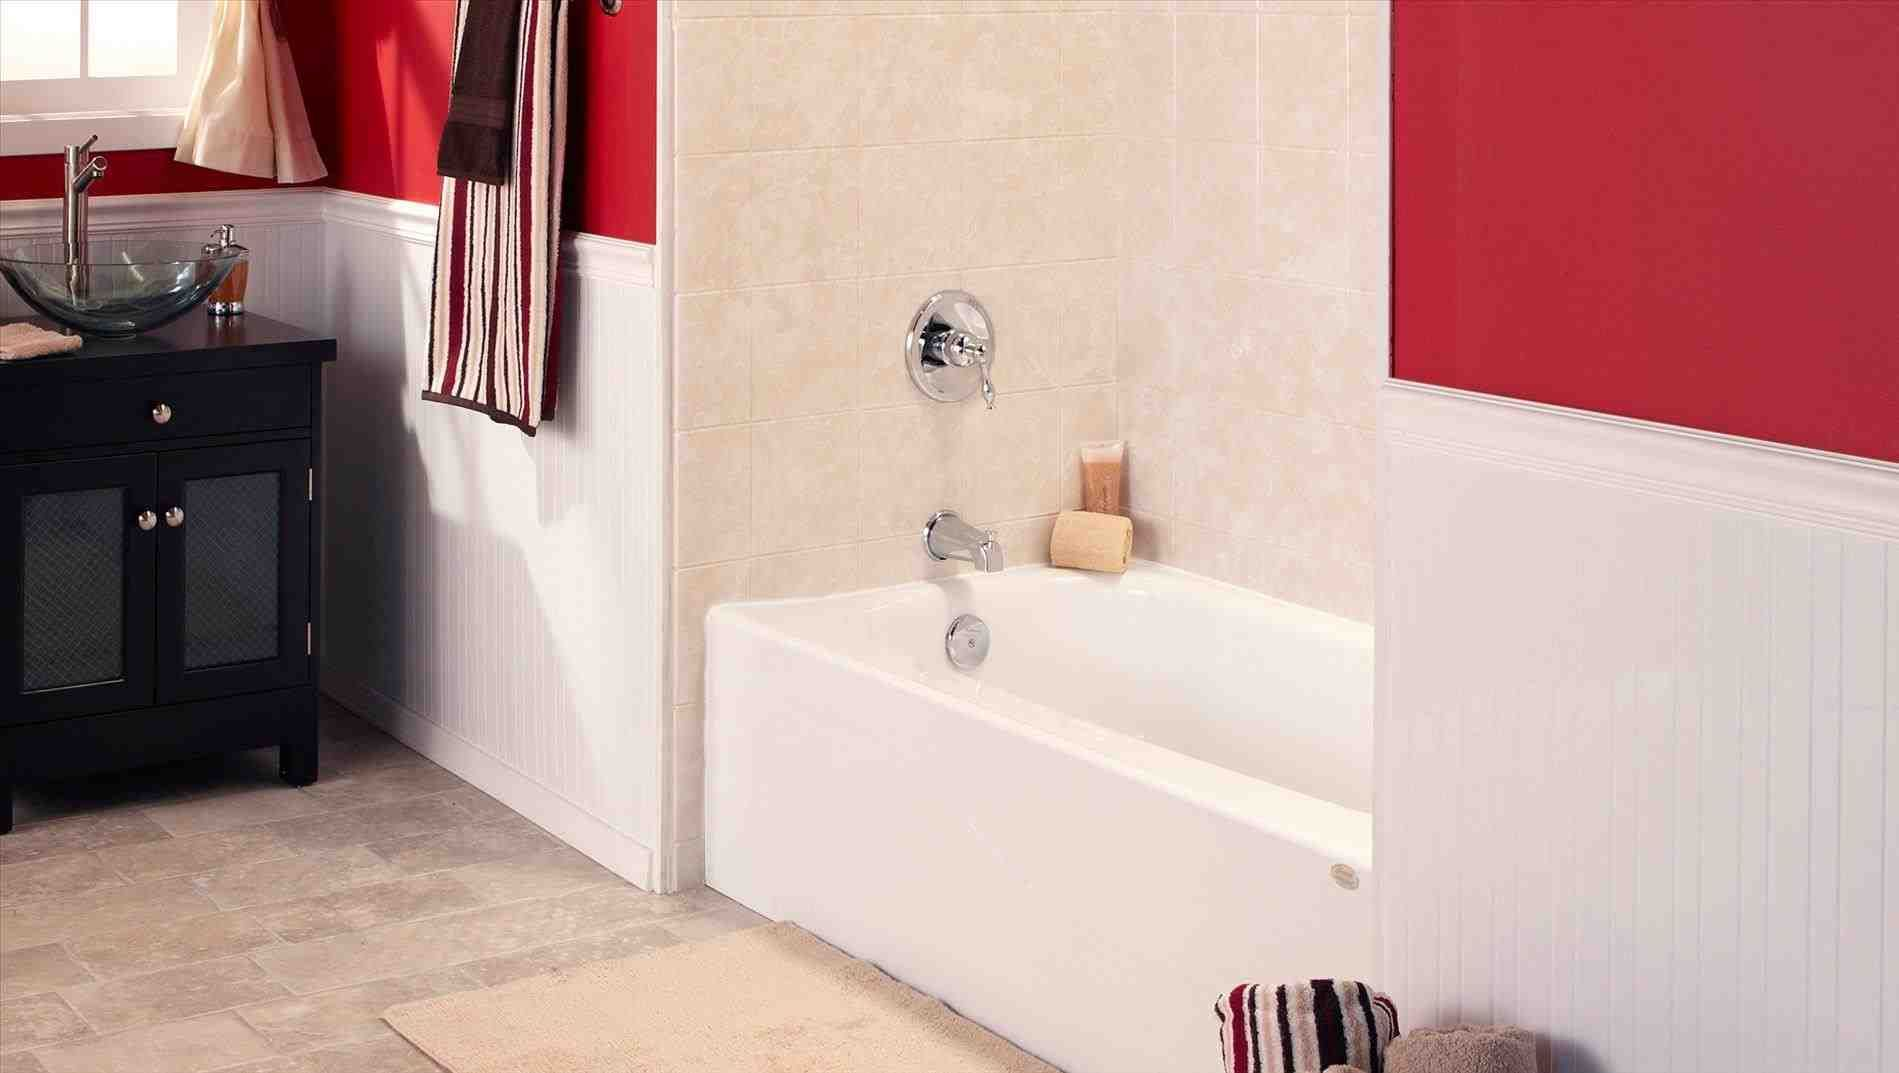 This bathtub wall liners - company red toilet sale ready cheap ...